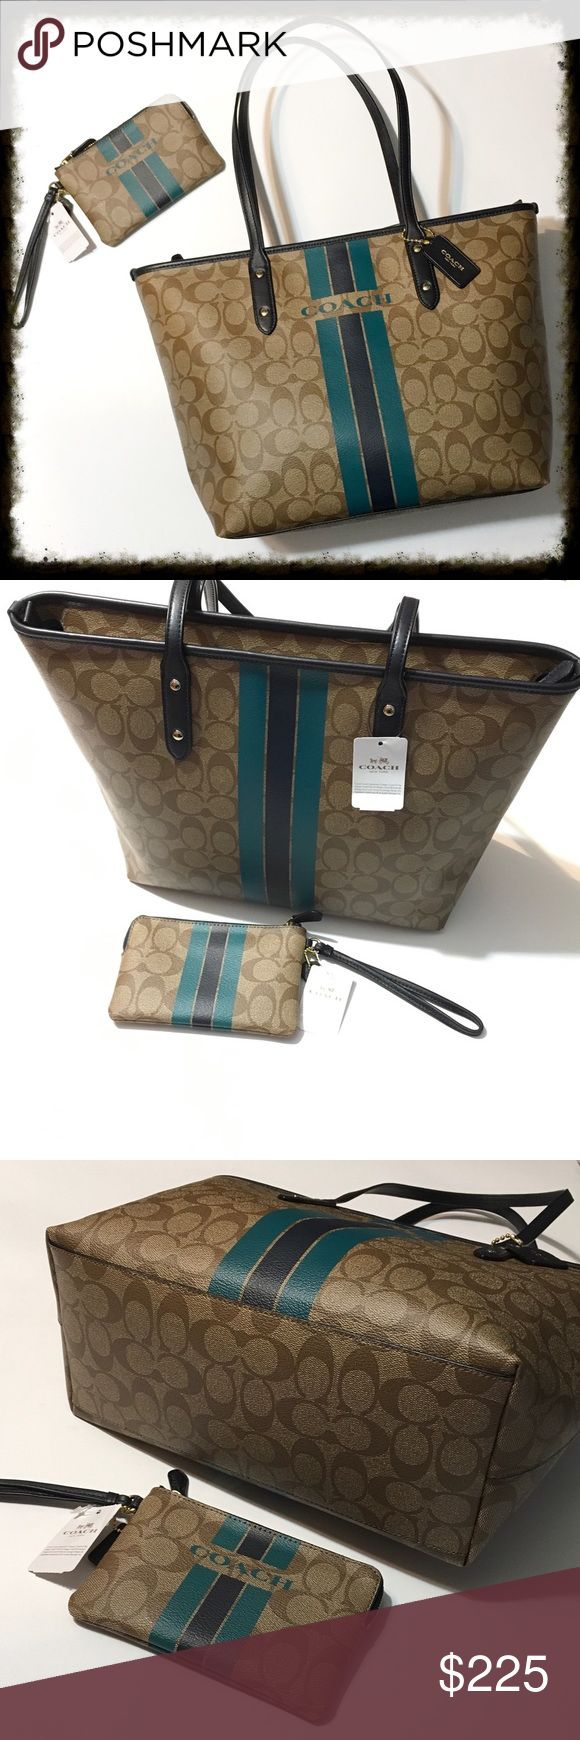 """Coach Varsity Tote and Matching Wristlet Teal and navy stripes Coach tote bag with zipper top and matching wristlet. 100% authentic coach products. Both are brand-new with tags attached. These will make an excellent gift. Wristlet is 6"""" x 4"""". Tote is 16"""" x 10.5"""". Coach Bags Totes"""